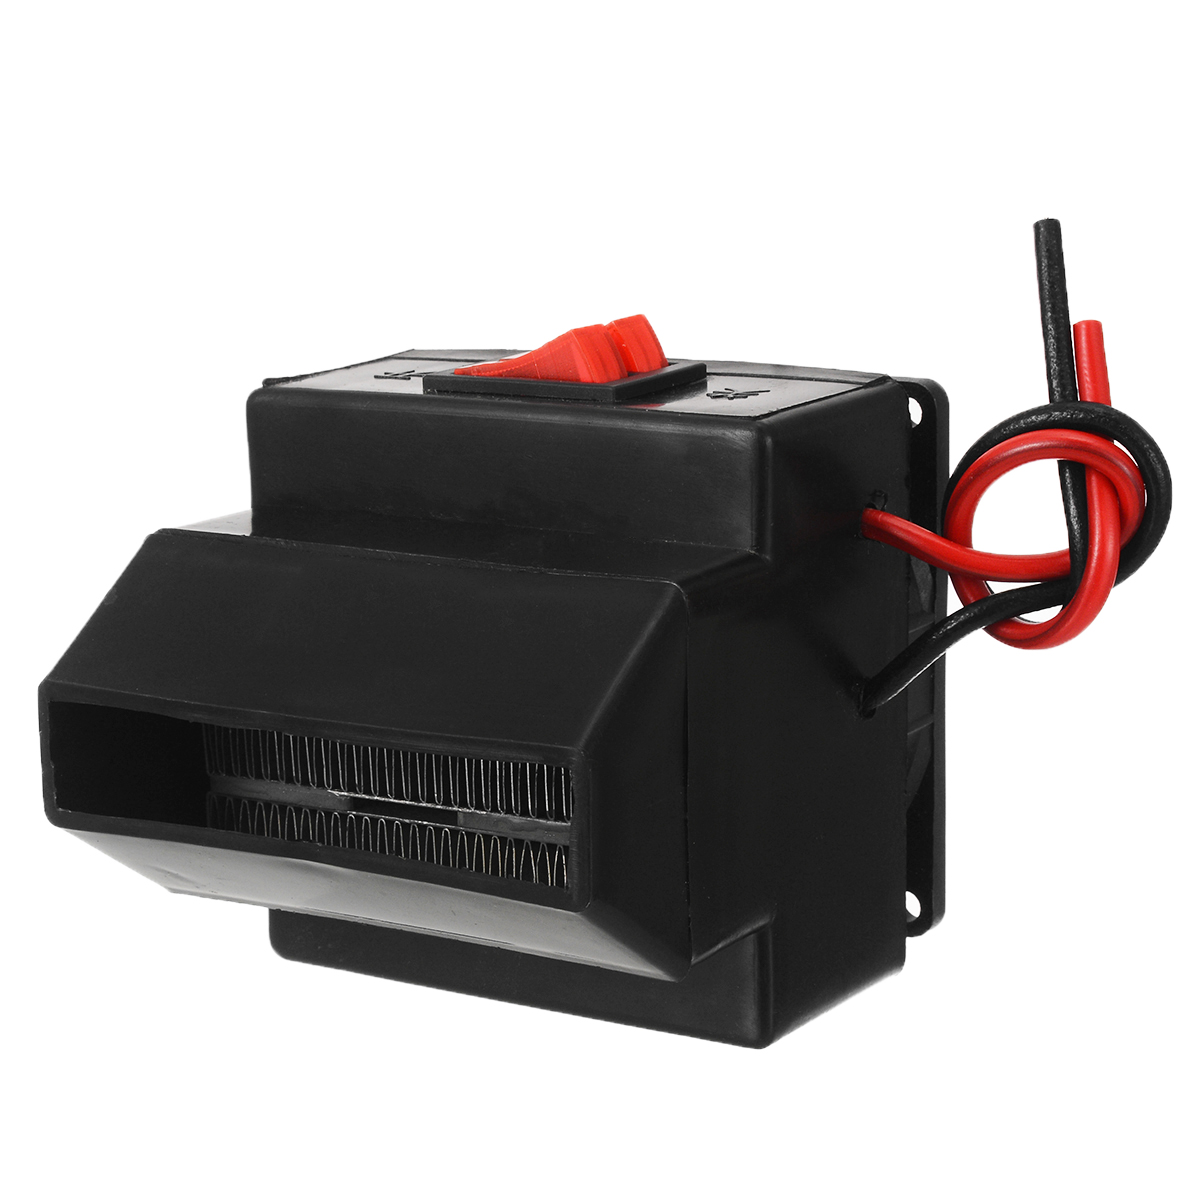 Portable 12V 300W Car Vehicle Auto Electric Heating Heater Hot Fan Defroster Demister Car Accessories 12V 300W in Heating Fans from Automobiles Motorcycles